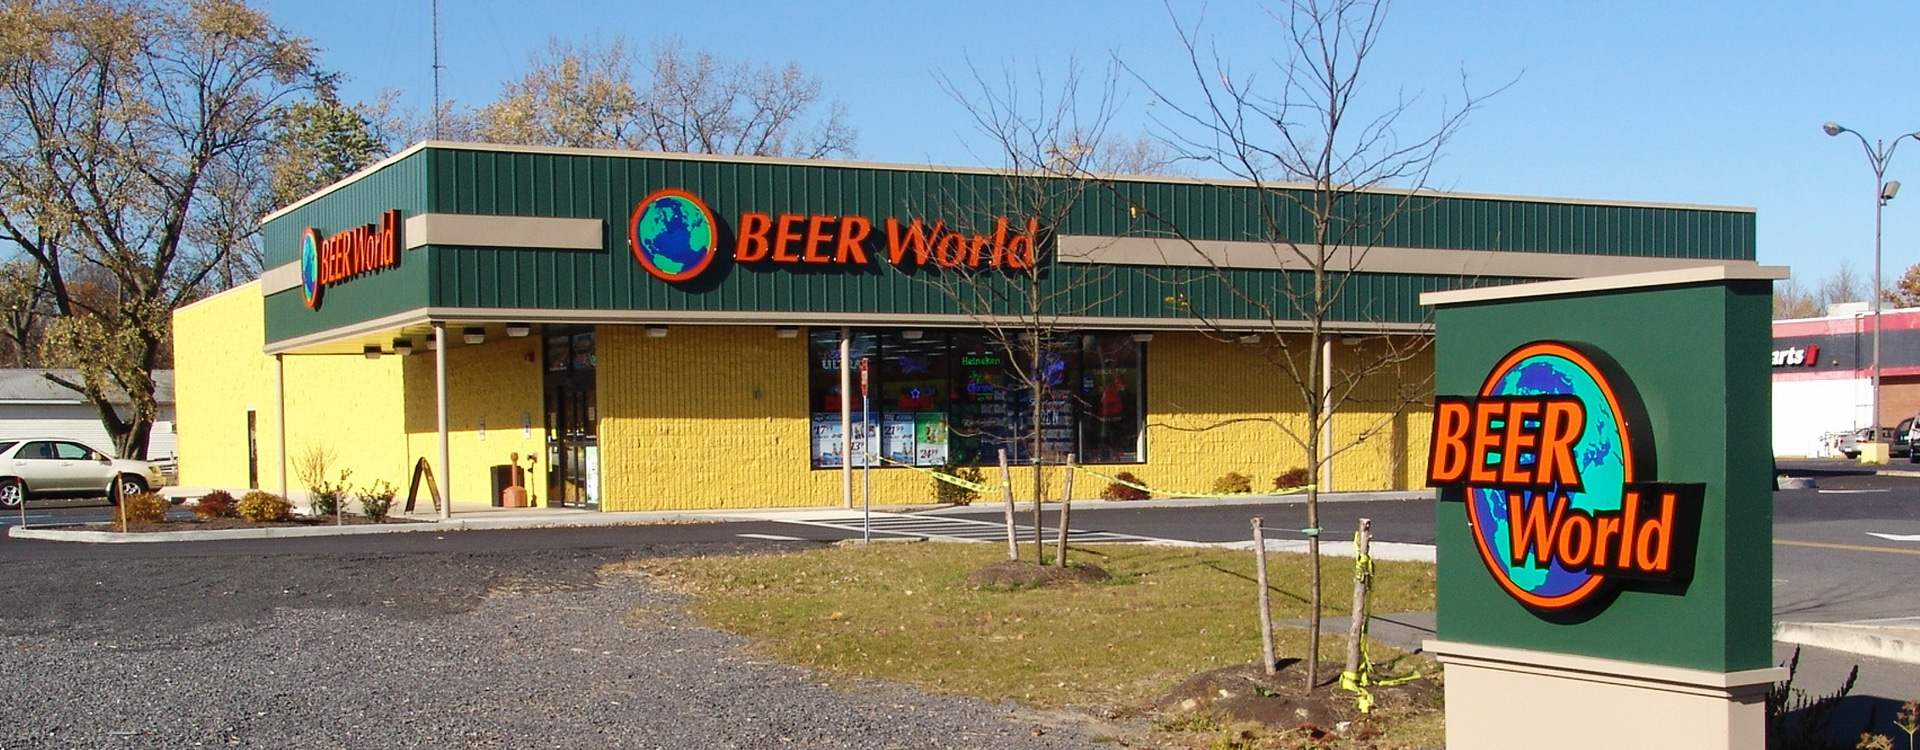 Beer World